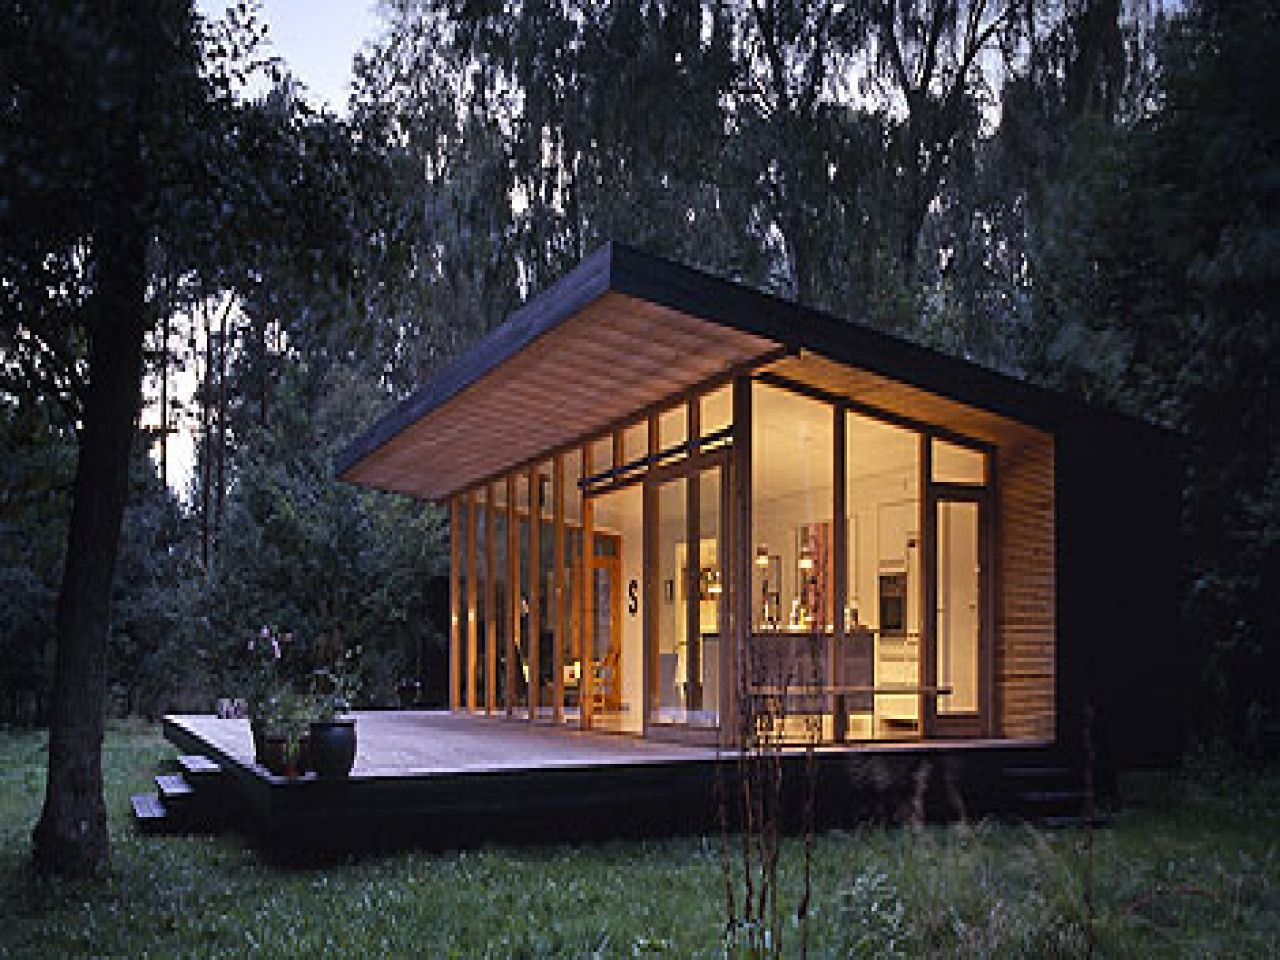 Modern House Designs Small Cottage on luxury waterfront small house, cottage doll house, studio design house, modern bungalow house, cedar wood siding house, modern landscape design house, cottage style house, storybook cottage house, home modern modular prefab house, scandinavian modern design house, small modern beach house, modern cabin house, modern architecture house, modern 3 bedroom house designs, small country cottage house, modern mountain home designs, modern mountain retreat house, cute country cottage home house, modern contemporary house exterior design, very modern house,